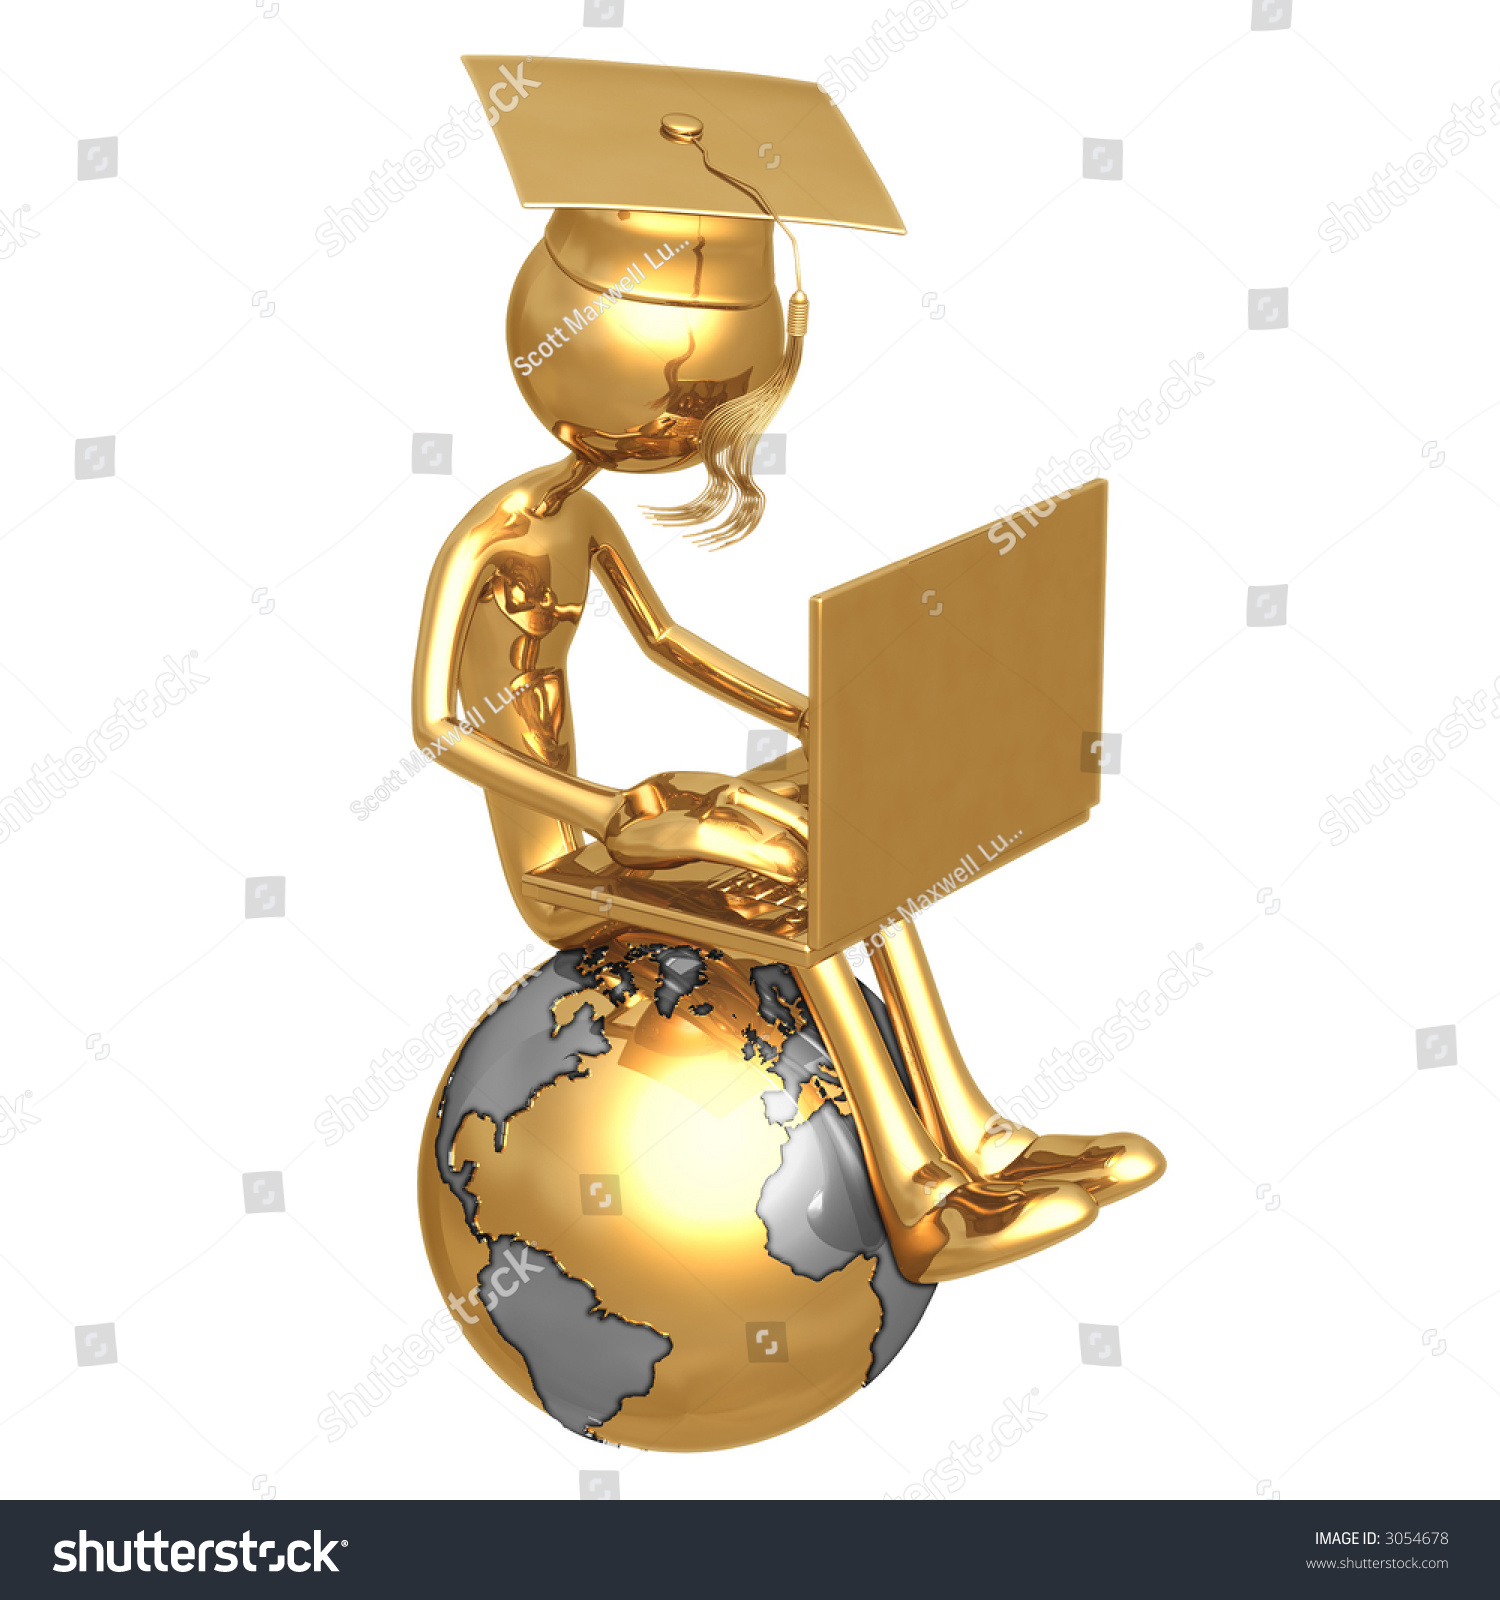 golden grad on top of the world with laptop online education graduation concept stock photo. Black Bedroom Furniture Sets. Home Design Ideas